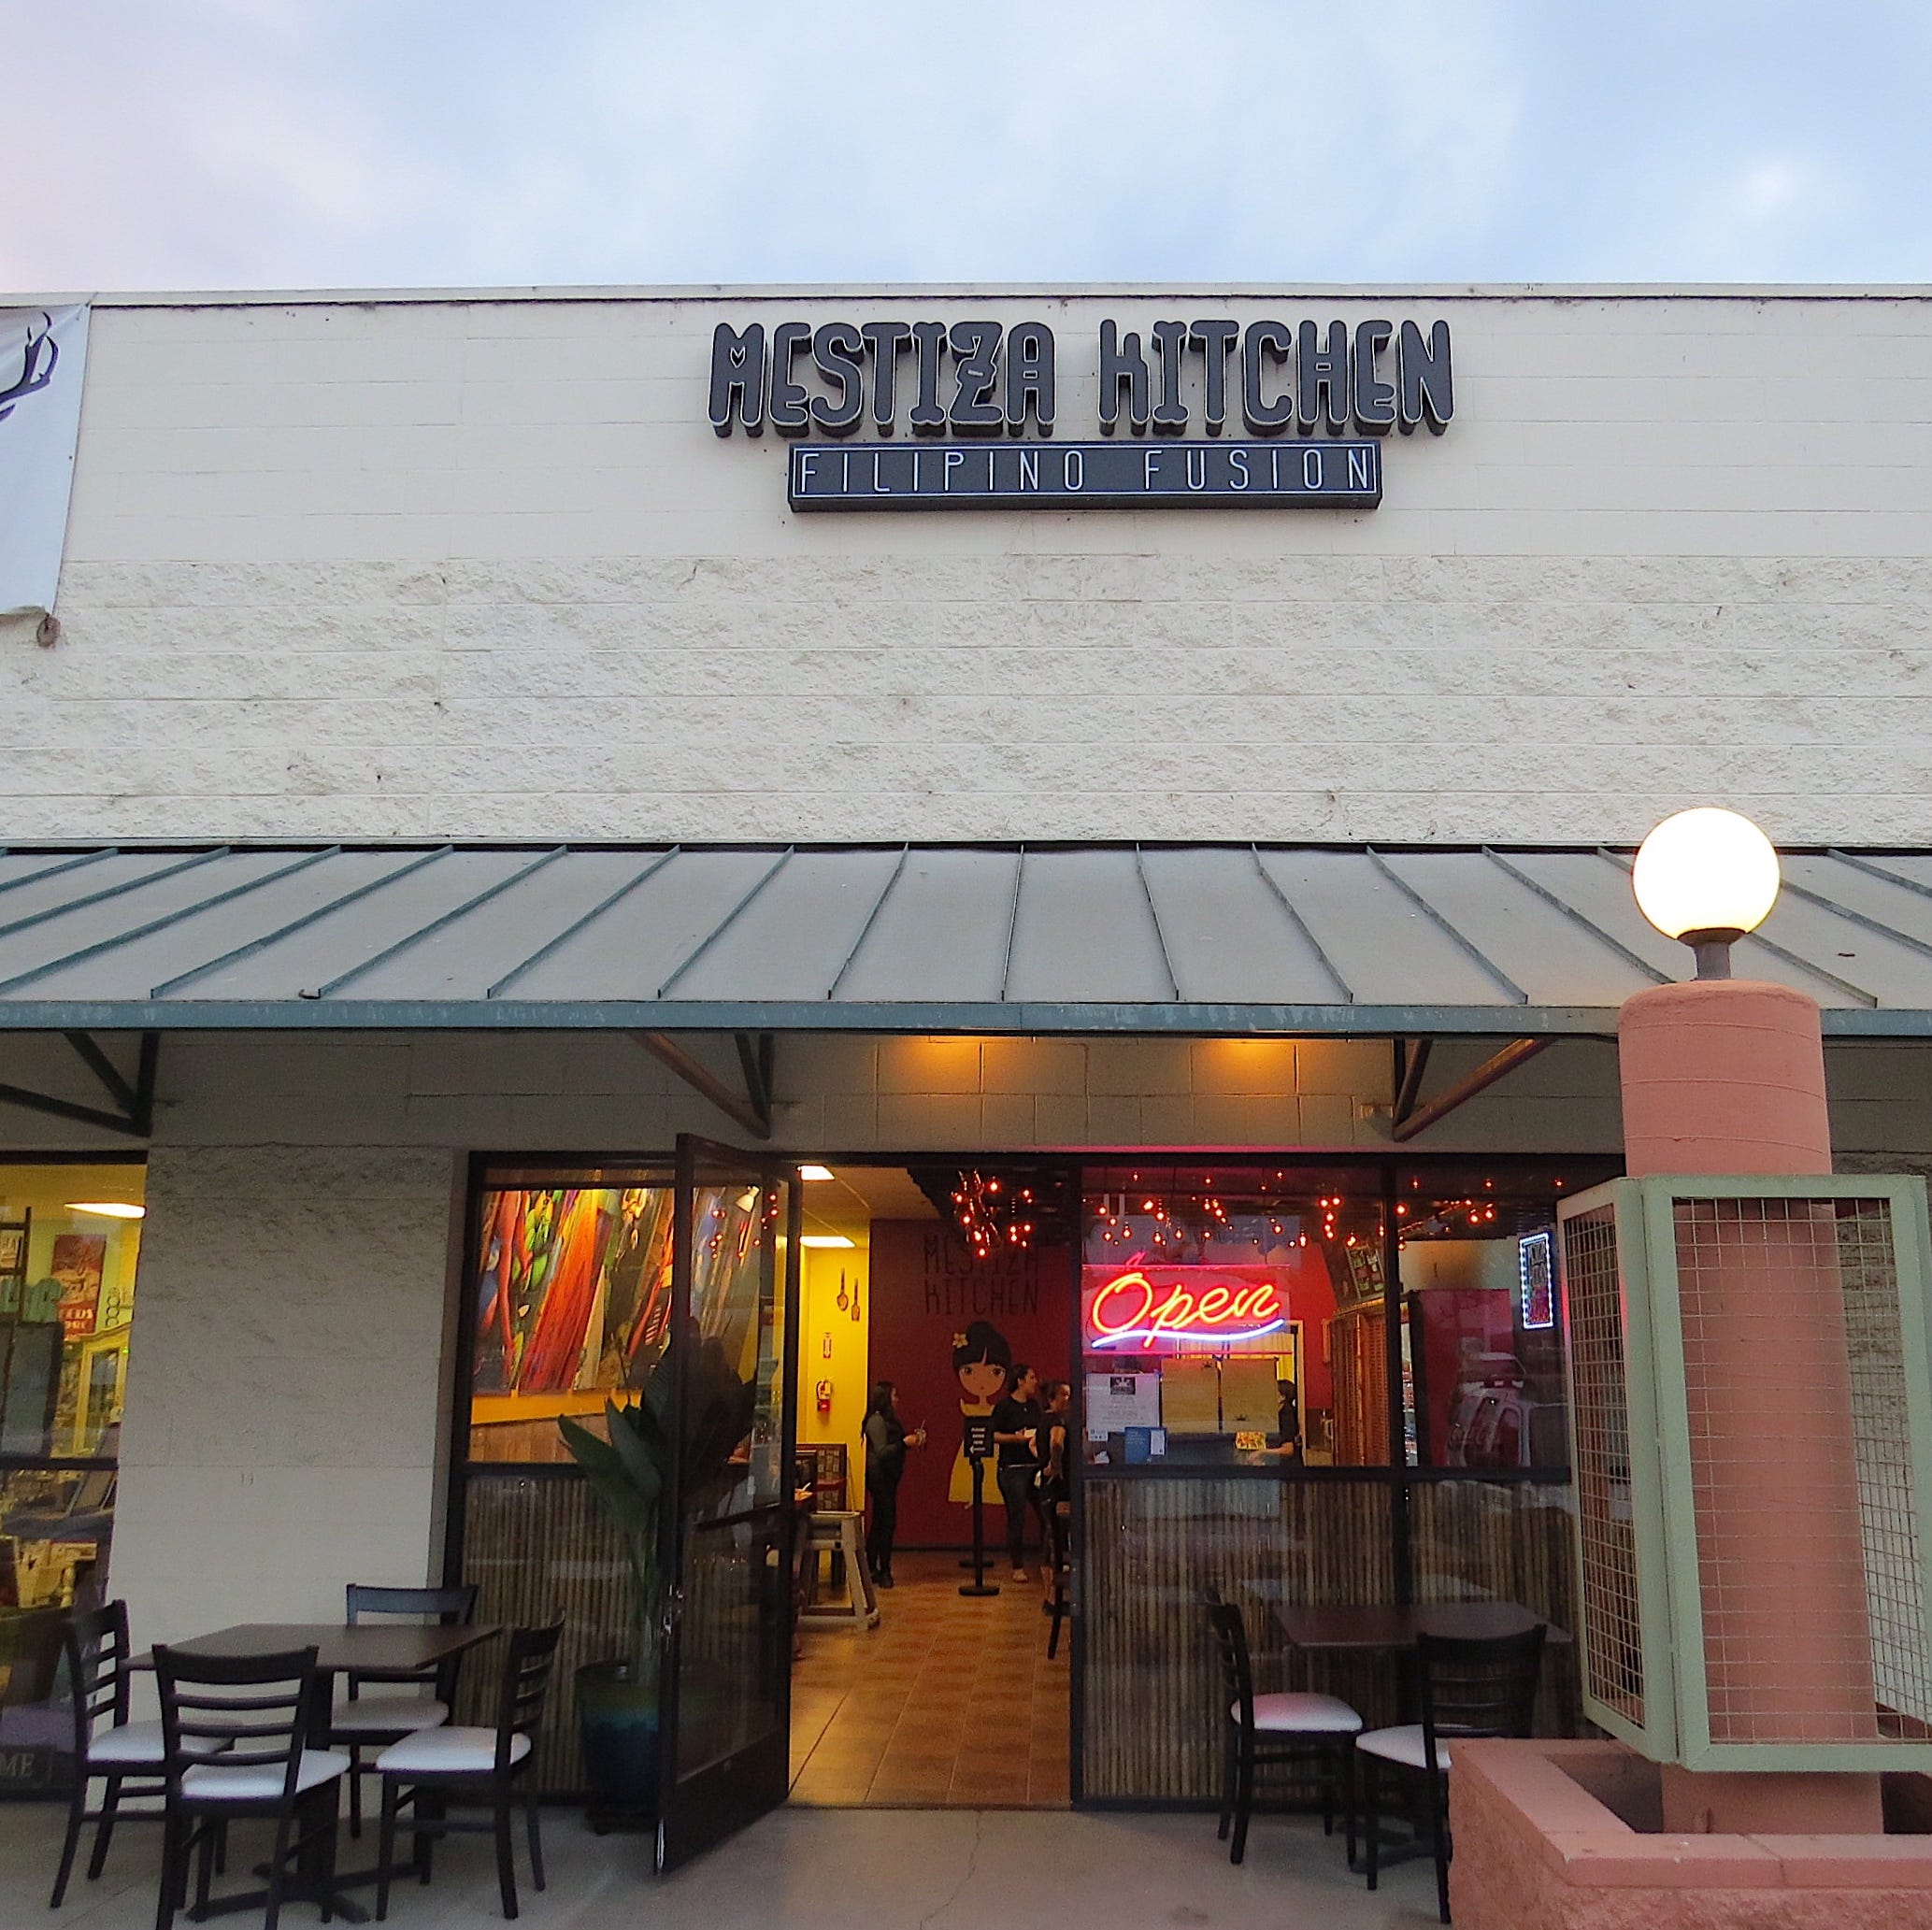 Open and shut: Mestiza Kitchen brings fusion of Filipino, other cuisines to Ventura